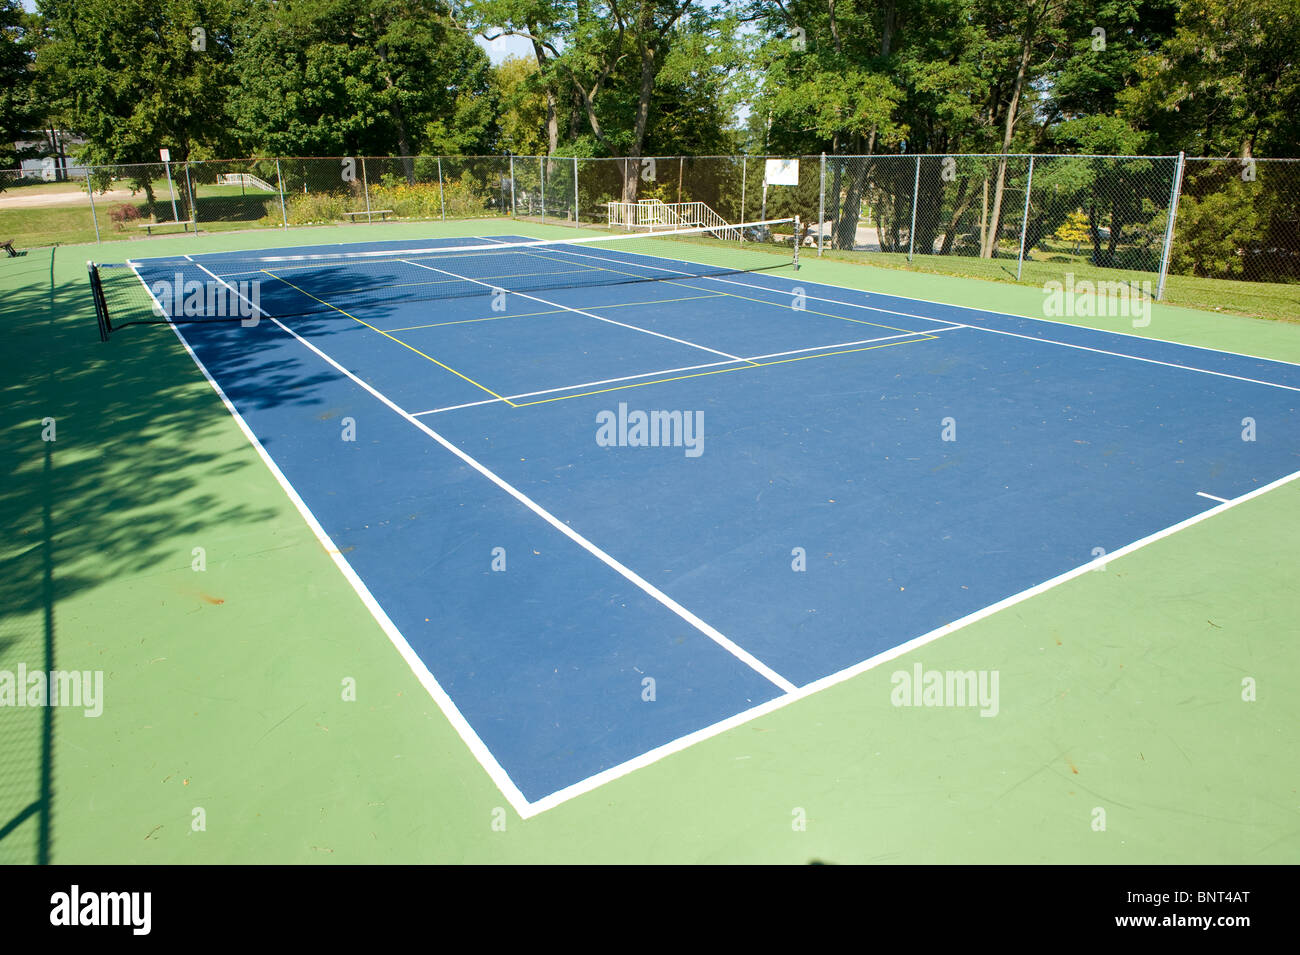 Empty tennis court with Pickleball lines painted on it - Stock Image